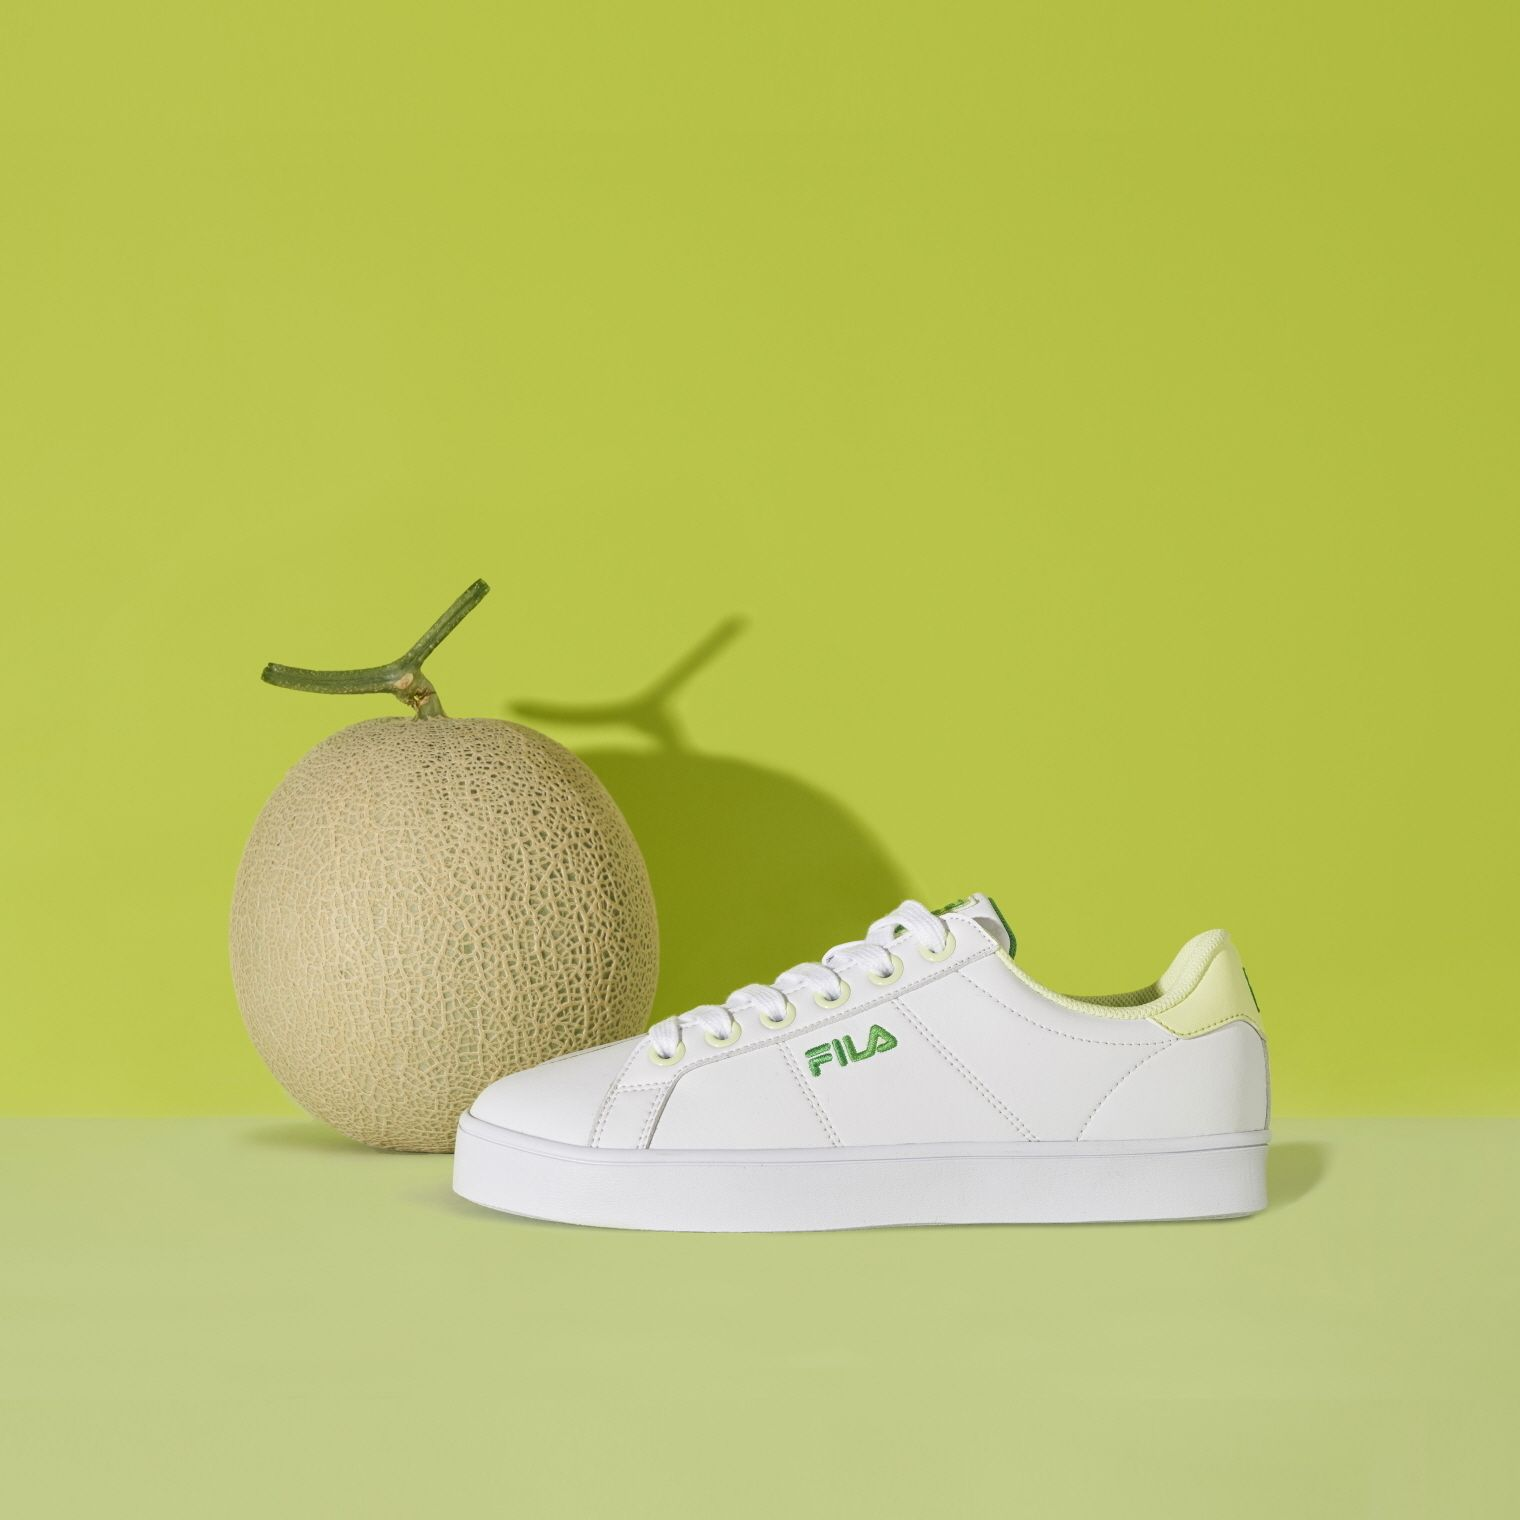 FILA Low Top Melona x FILA Court Deluxe White Green limited